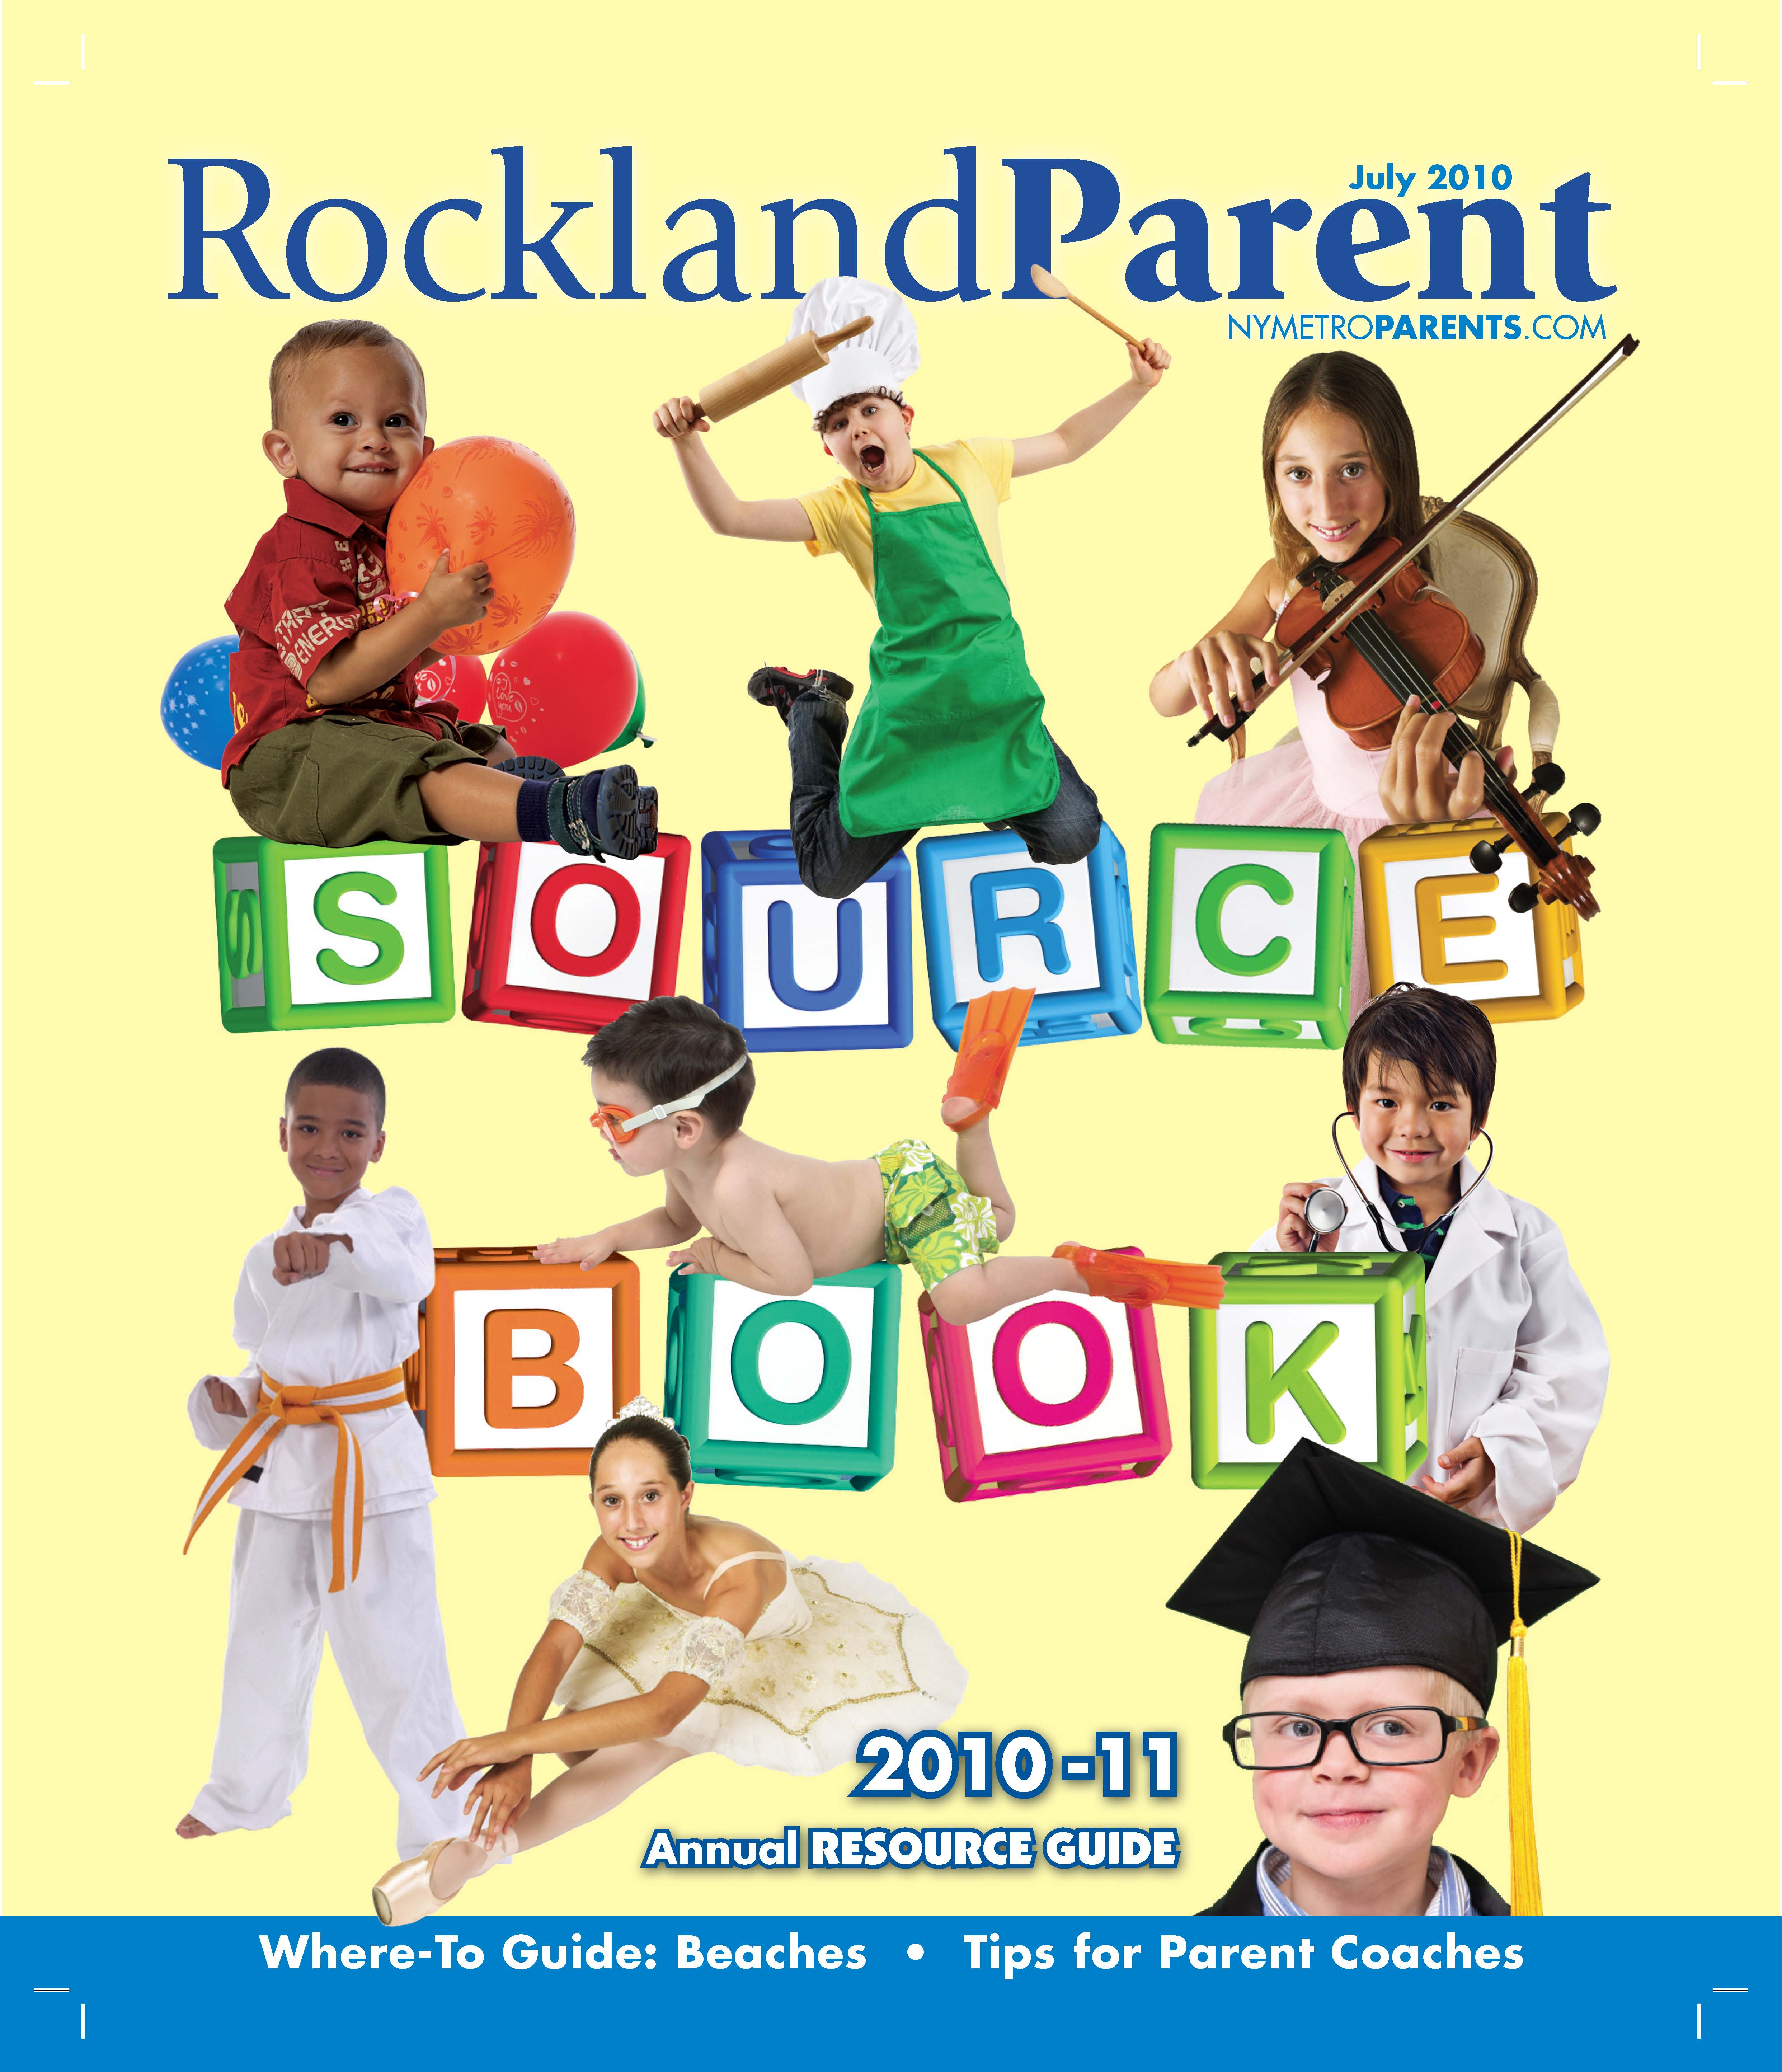 Rockland Parent magazine, Source Book July 2010